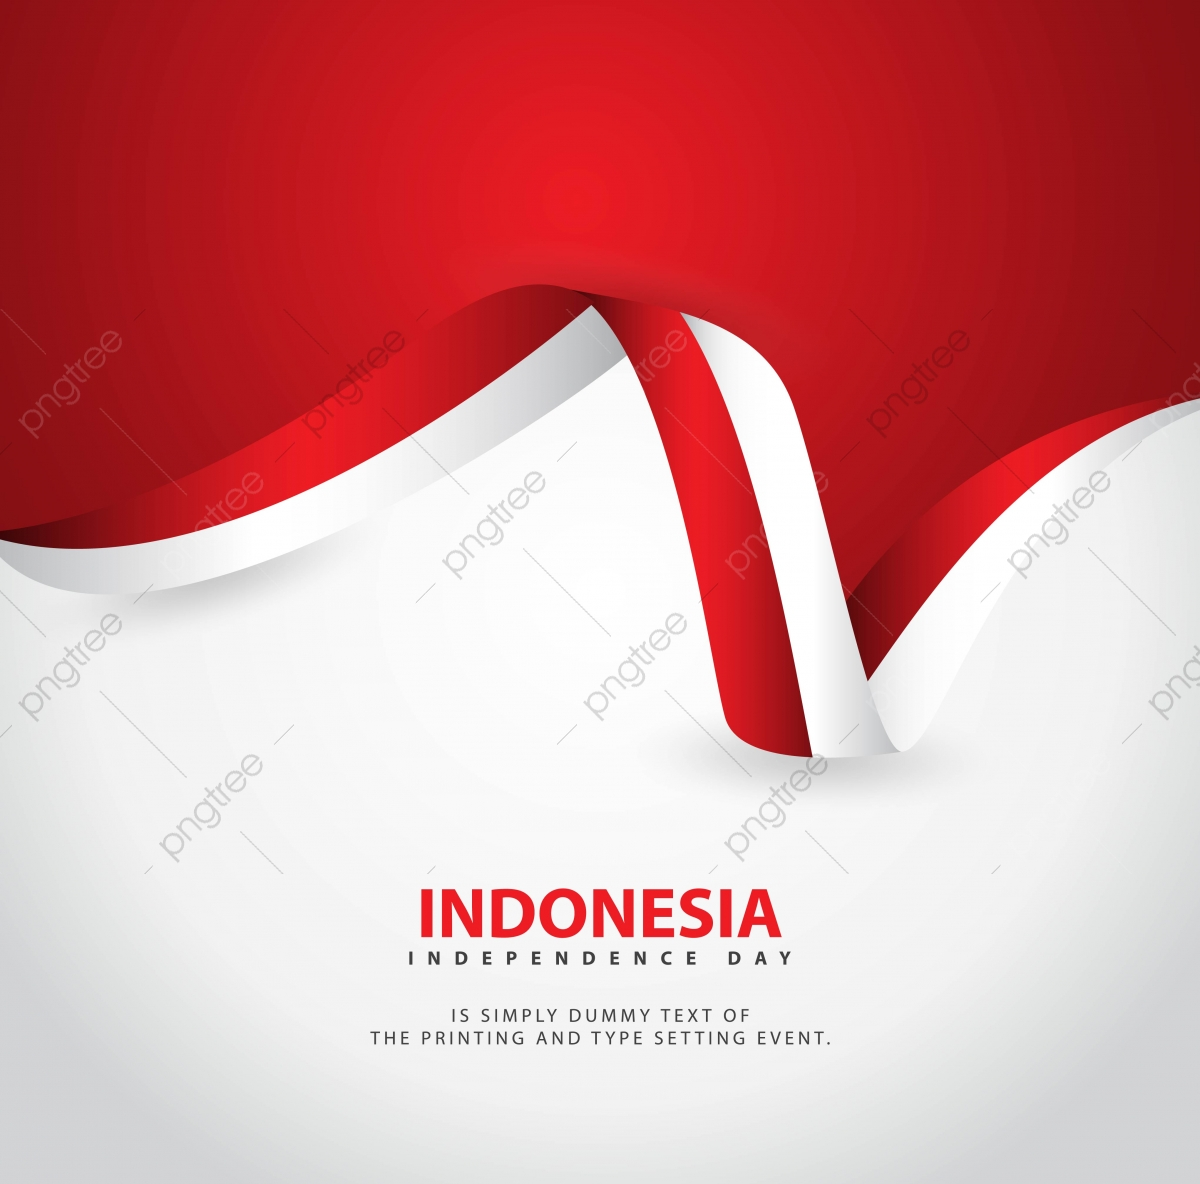 Indonesia Independence Day Vector Template Design.